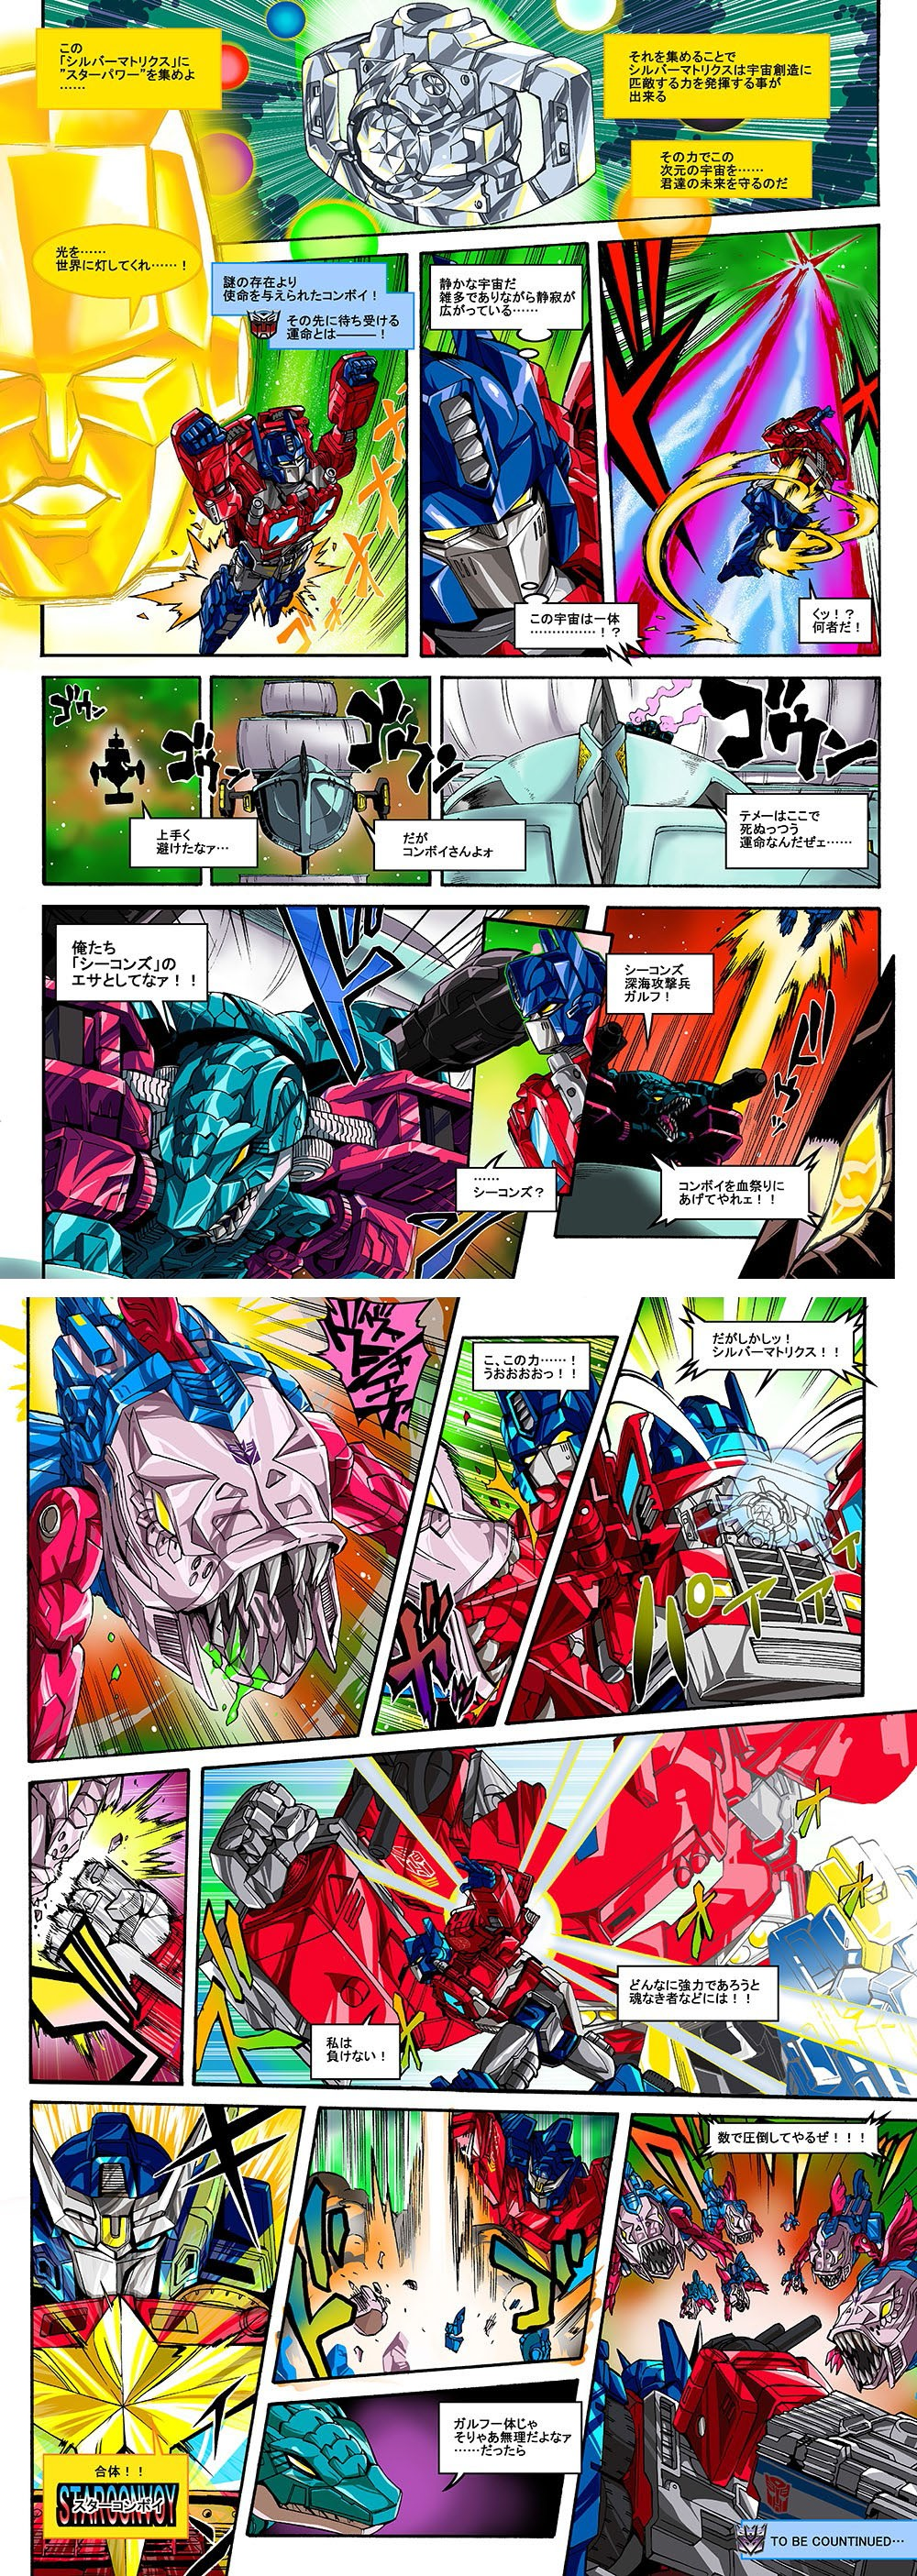 Transformers News: Takara Tomy Posts New Turtler Manga Issues 2 and 3